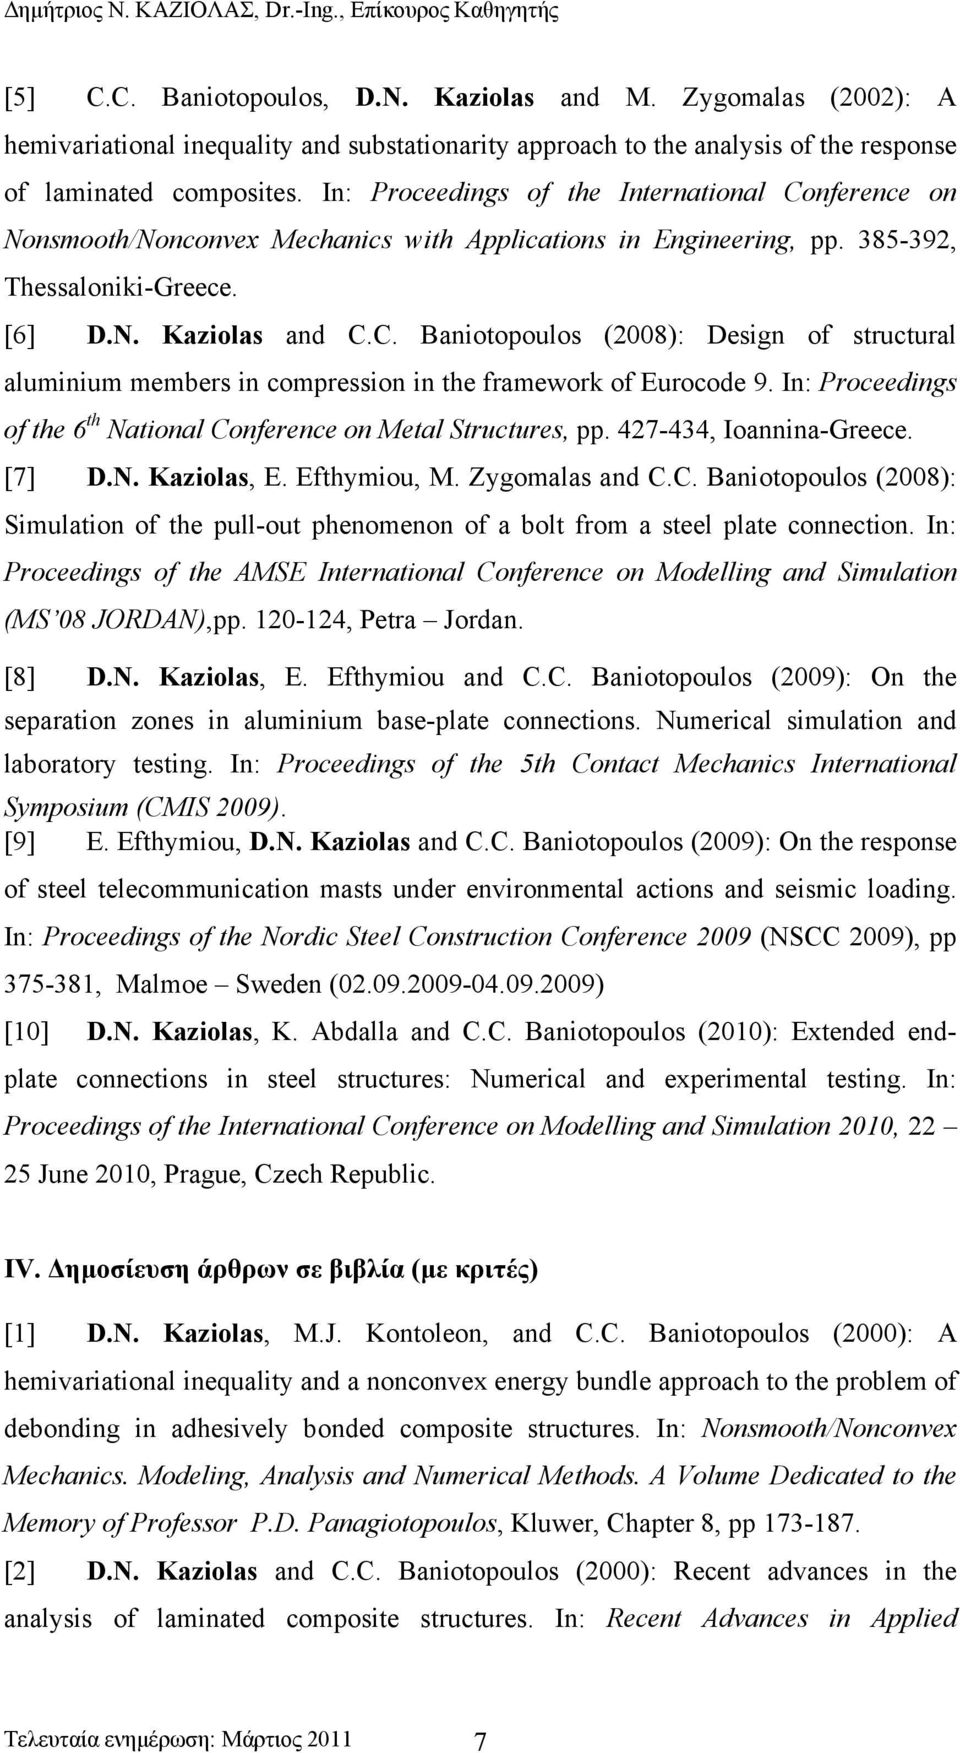 In: Proceedings of the 6 th National Conference on Metal Structures, pp. 427-434, Ioannina-Greece. [7] D.N. Kaziolas, E. Efthymiou, M. Zygomalas and C.C. Baniotopoulos (2008): Simulation of the pull-out phenomenon of a bolt from a steel plate connection.